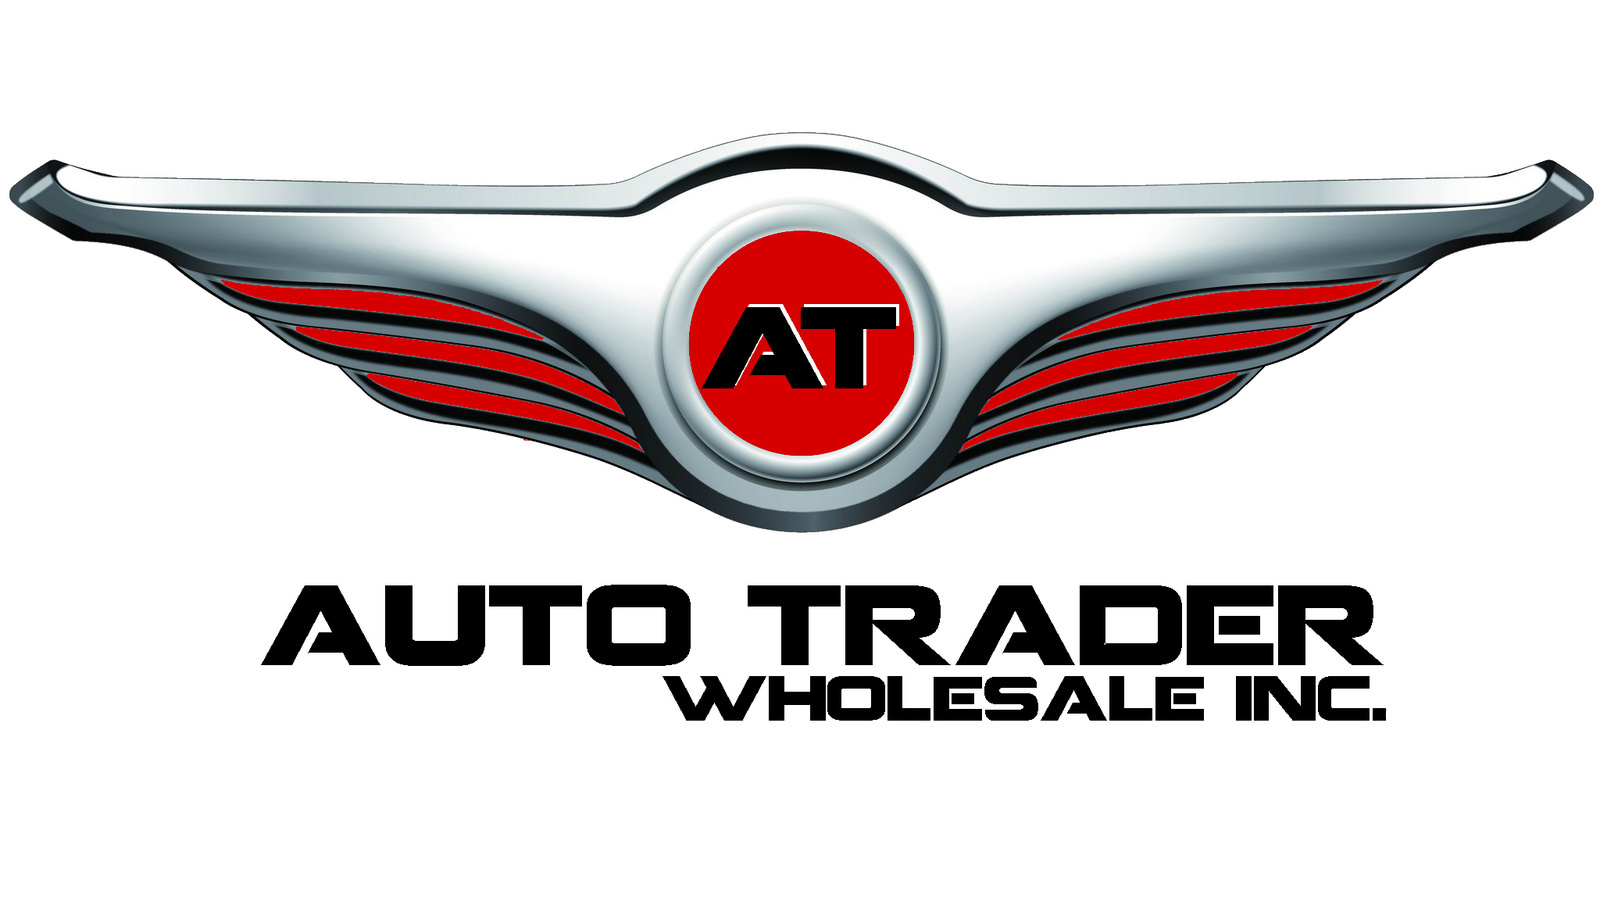 Auto Trader Wholesale Saddle Brook Nj Read Consumer